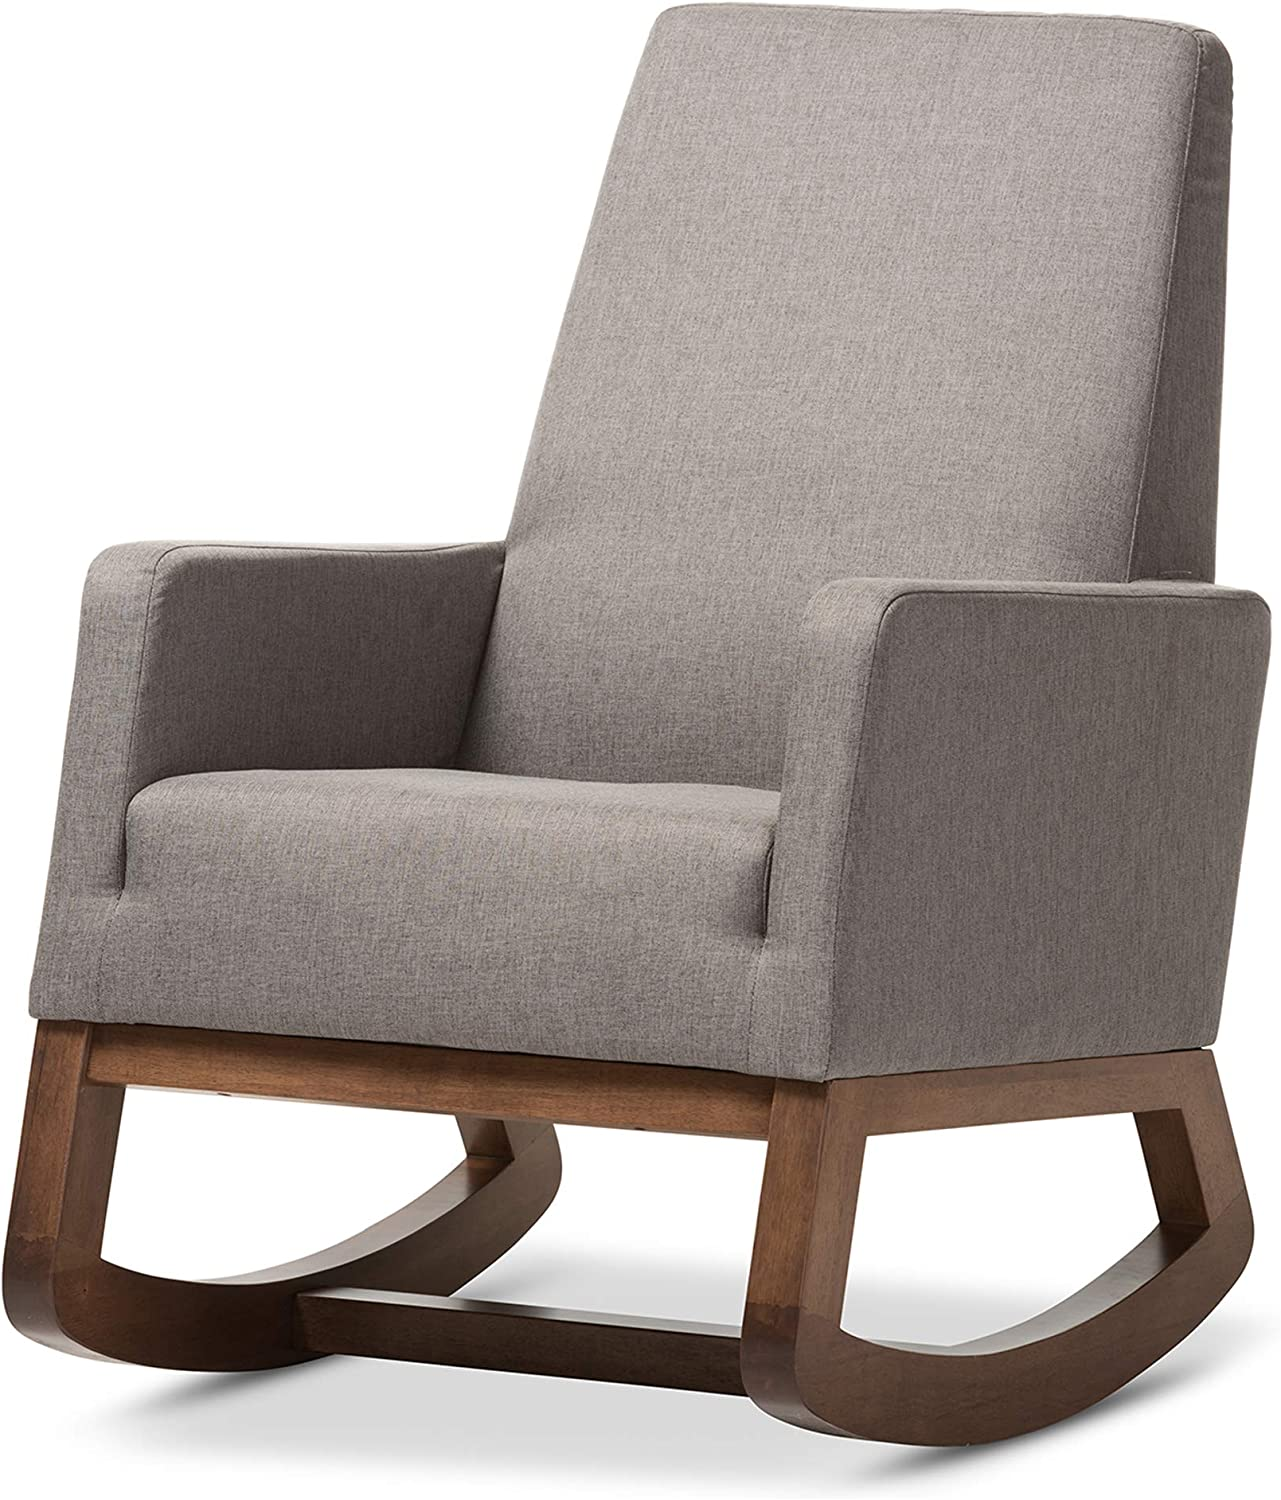 81N0gceH%2BeL. AC SL1500 - What Is The Best Living Room Chair For Neck Pain - ChairPicks